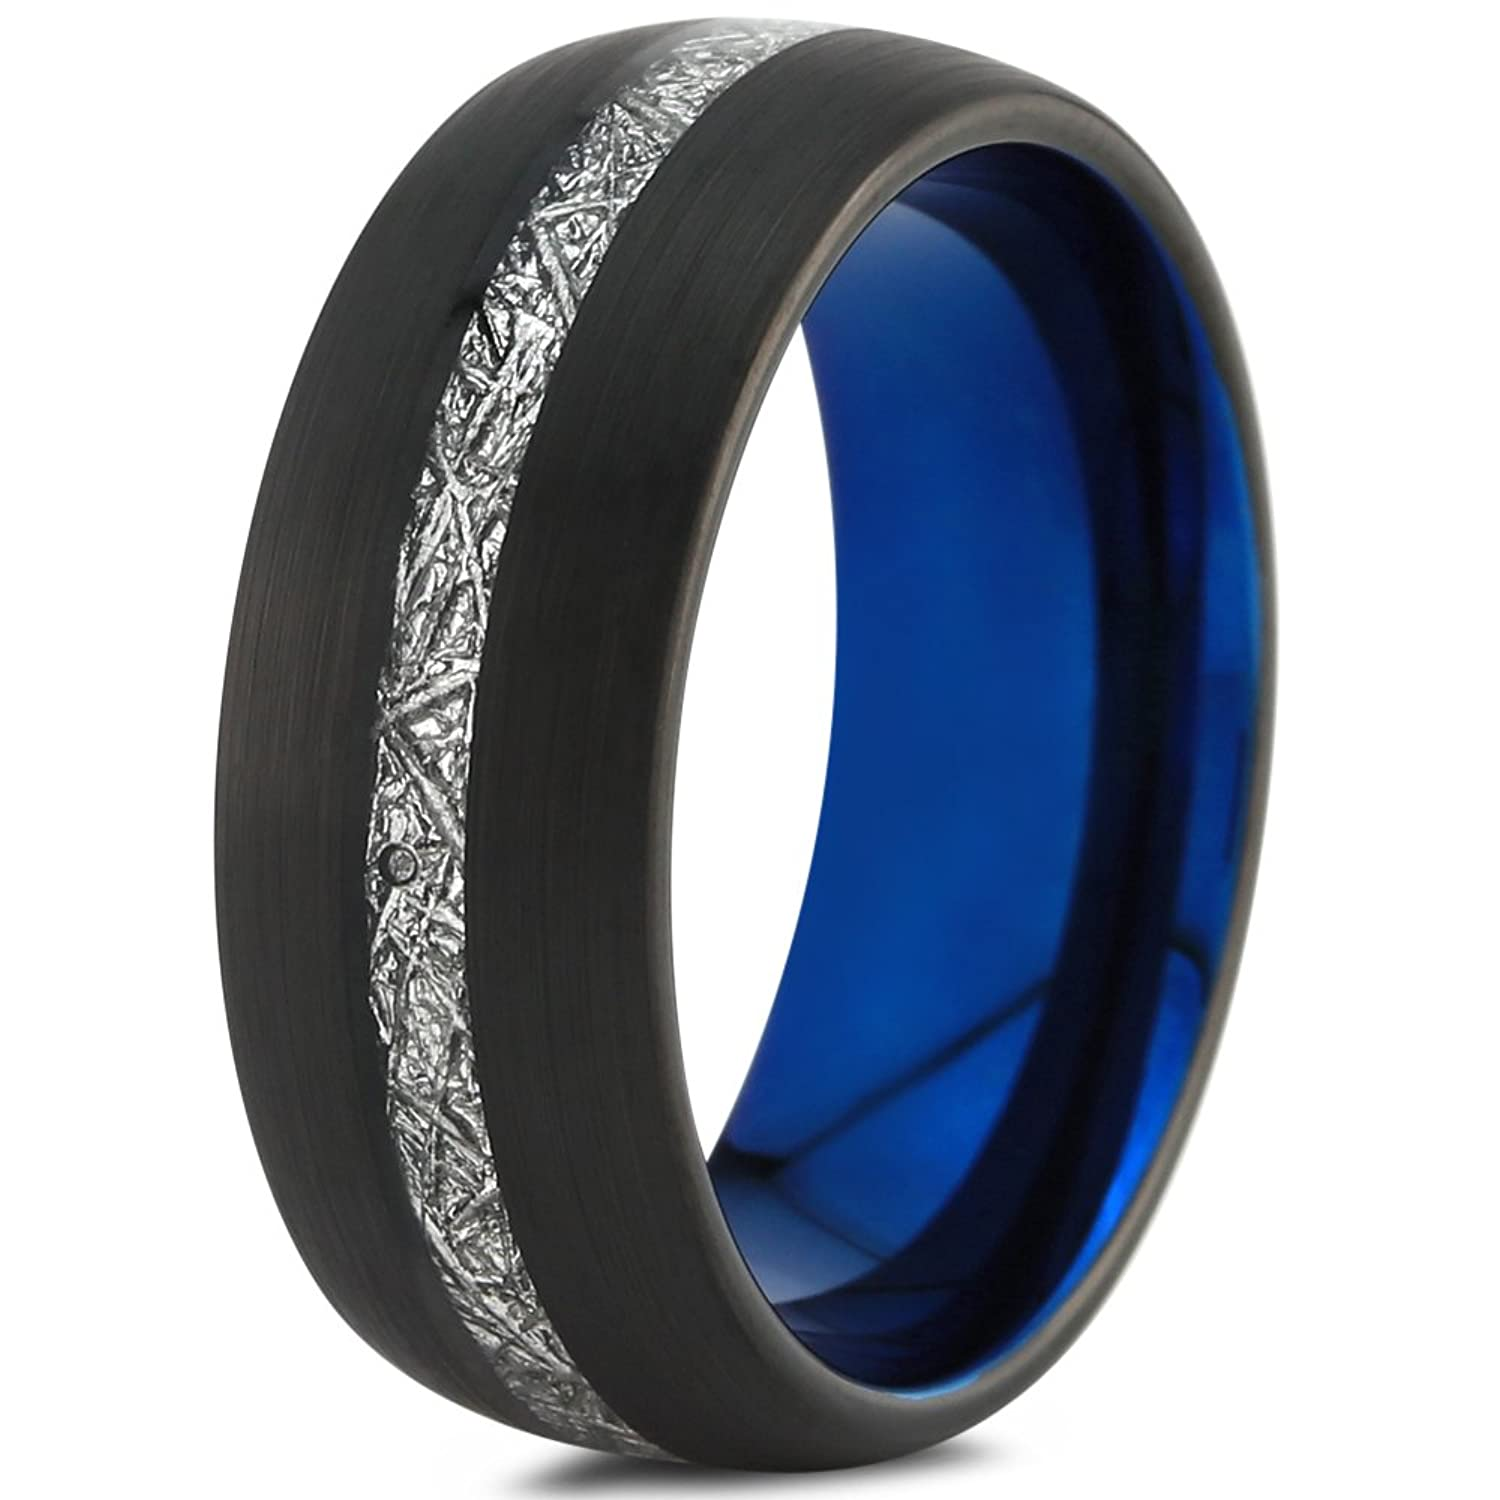 Tungsten Wedding Band Ring 8mm for Men Women Black Blue Grey Meteorite Inlay Dome Brushed Polished Center Line